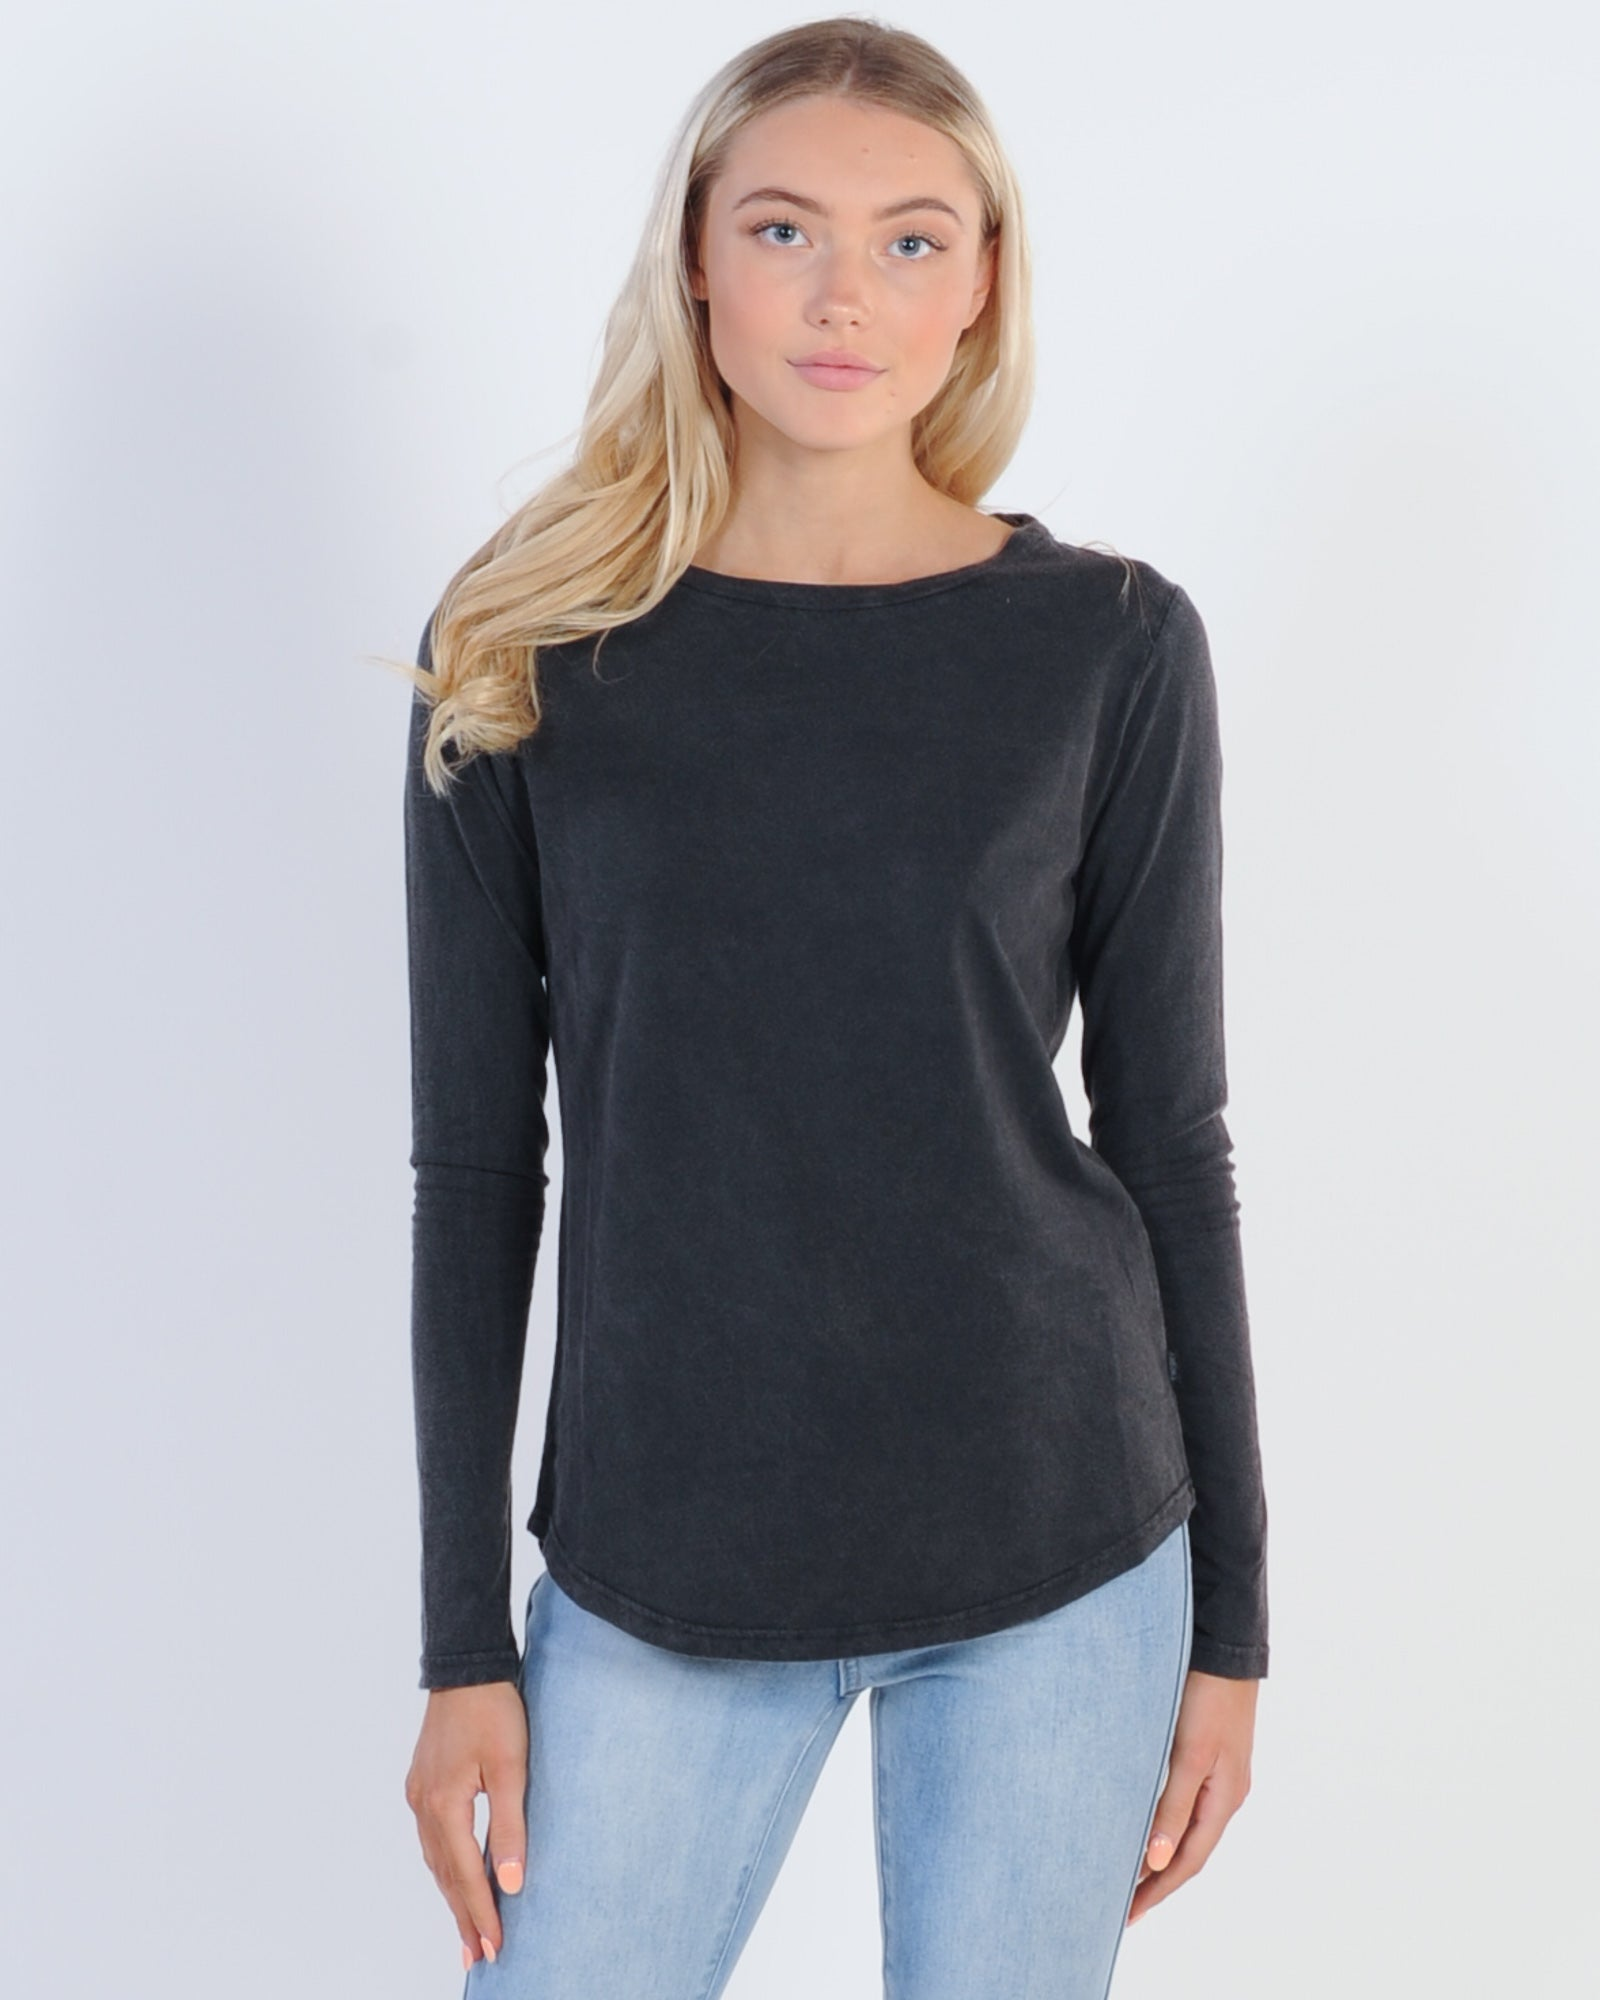 Silent Theory Kara L/S Tee - Washed Black